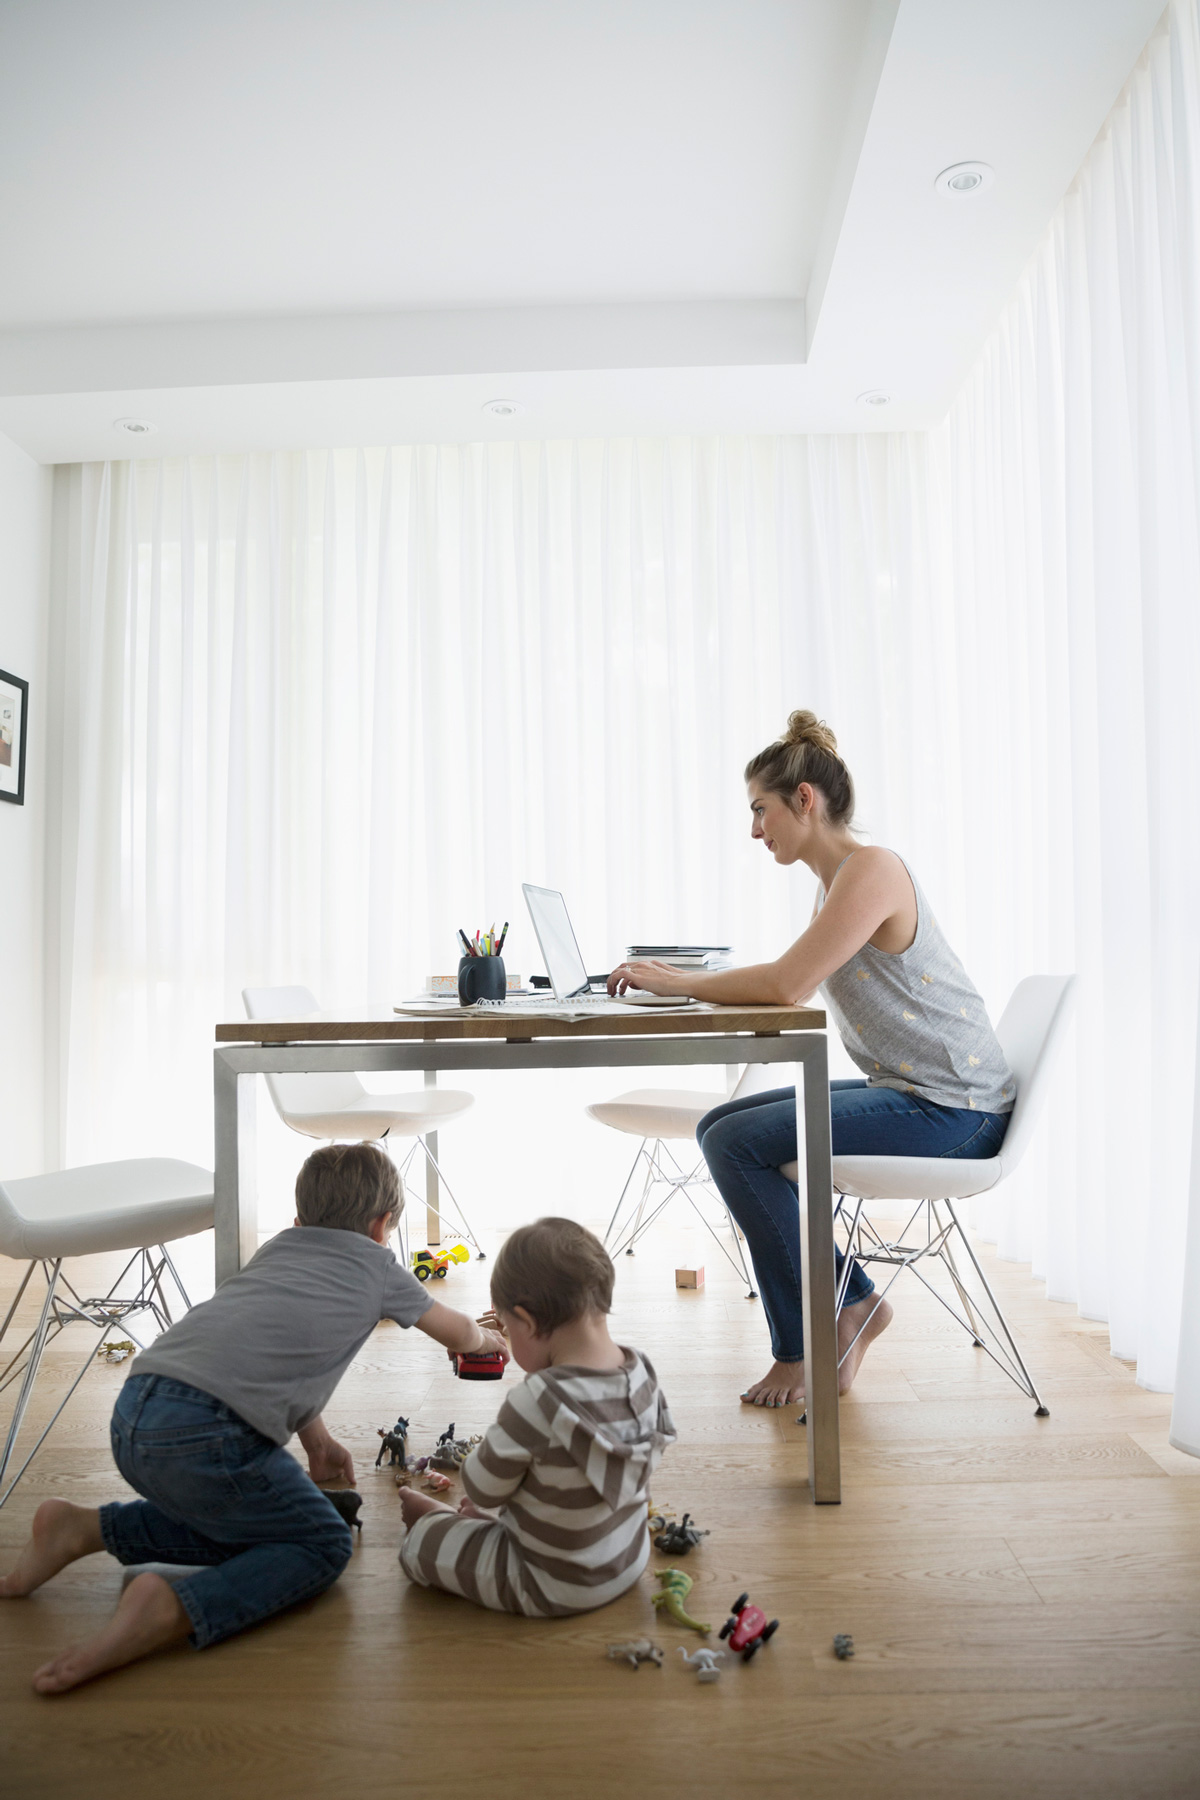 Woman working with kids under table